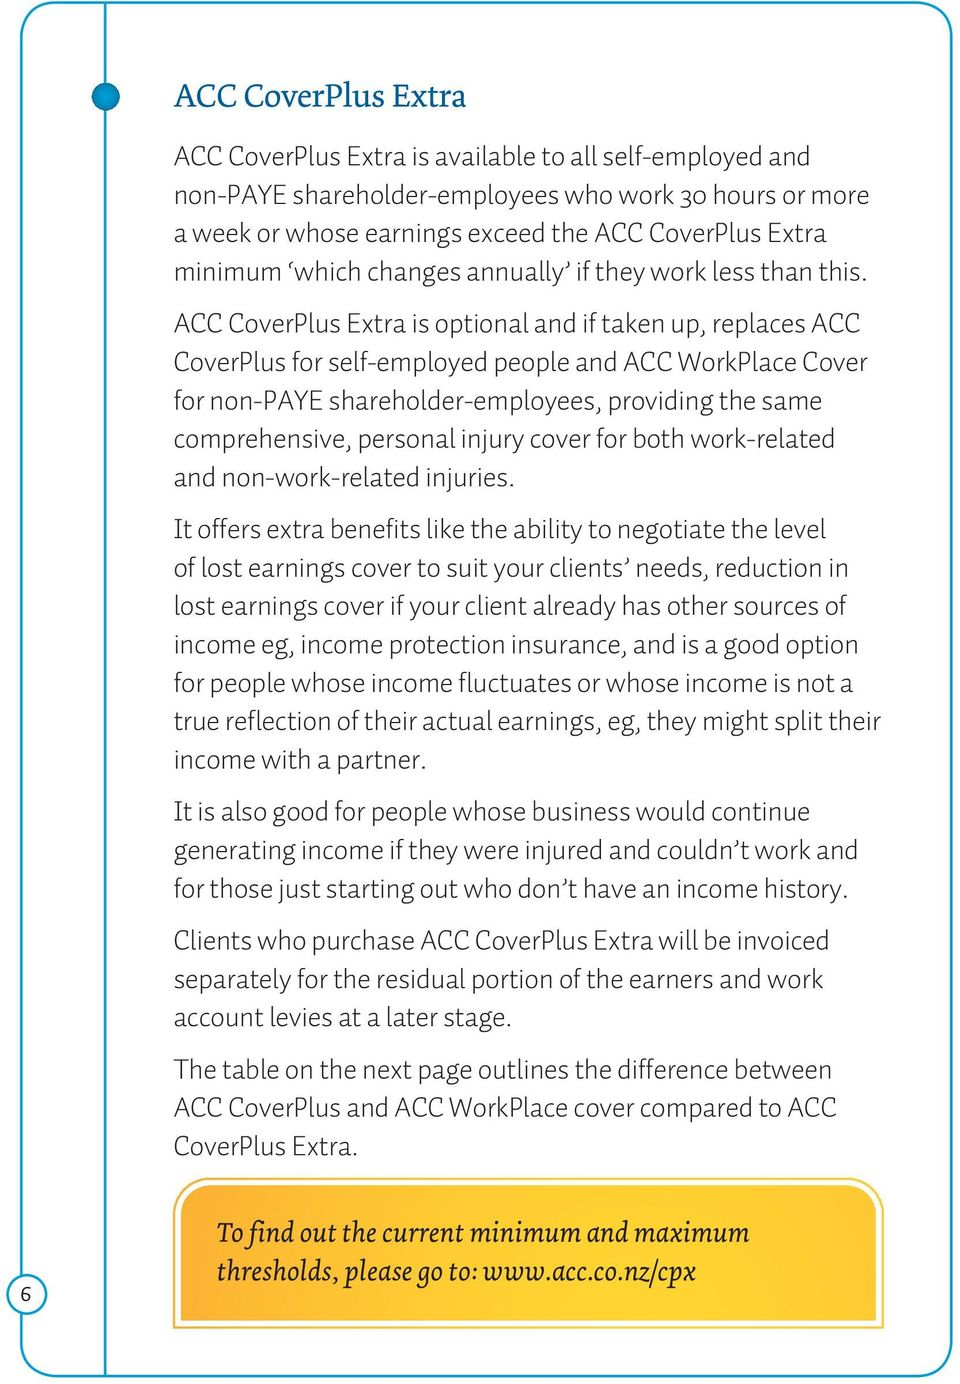 ACC CoverPlus Extra is optional and if taken up, replaces ACC CoverPlus for self-employed people and ACC WorkPlace Cover for non-paye shareholder-employees, providing the same comprehensive, personal